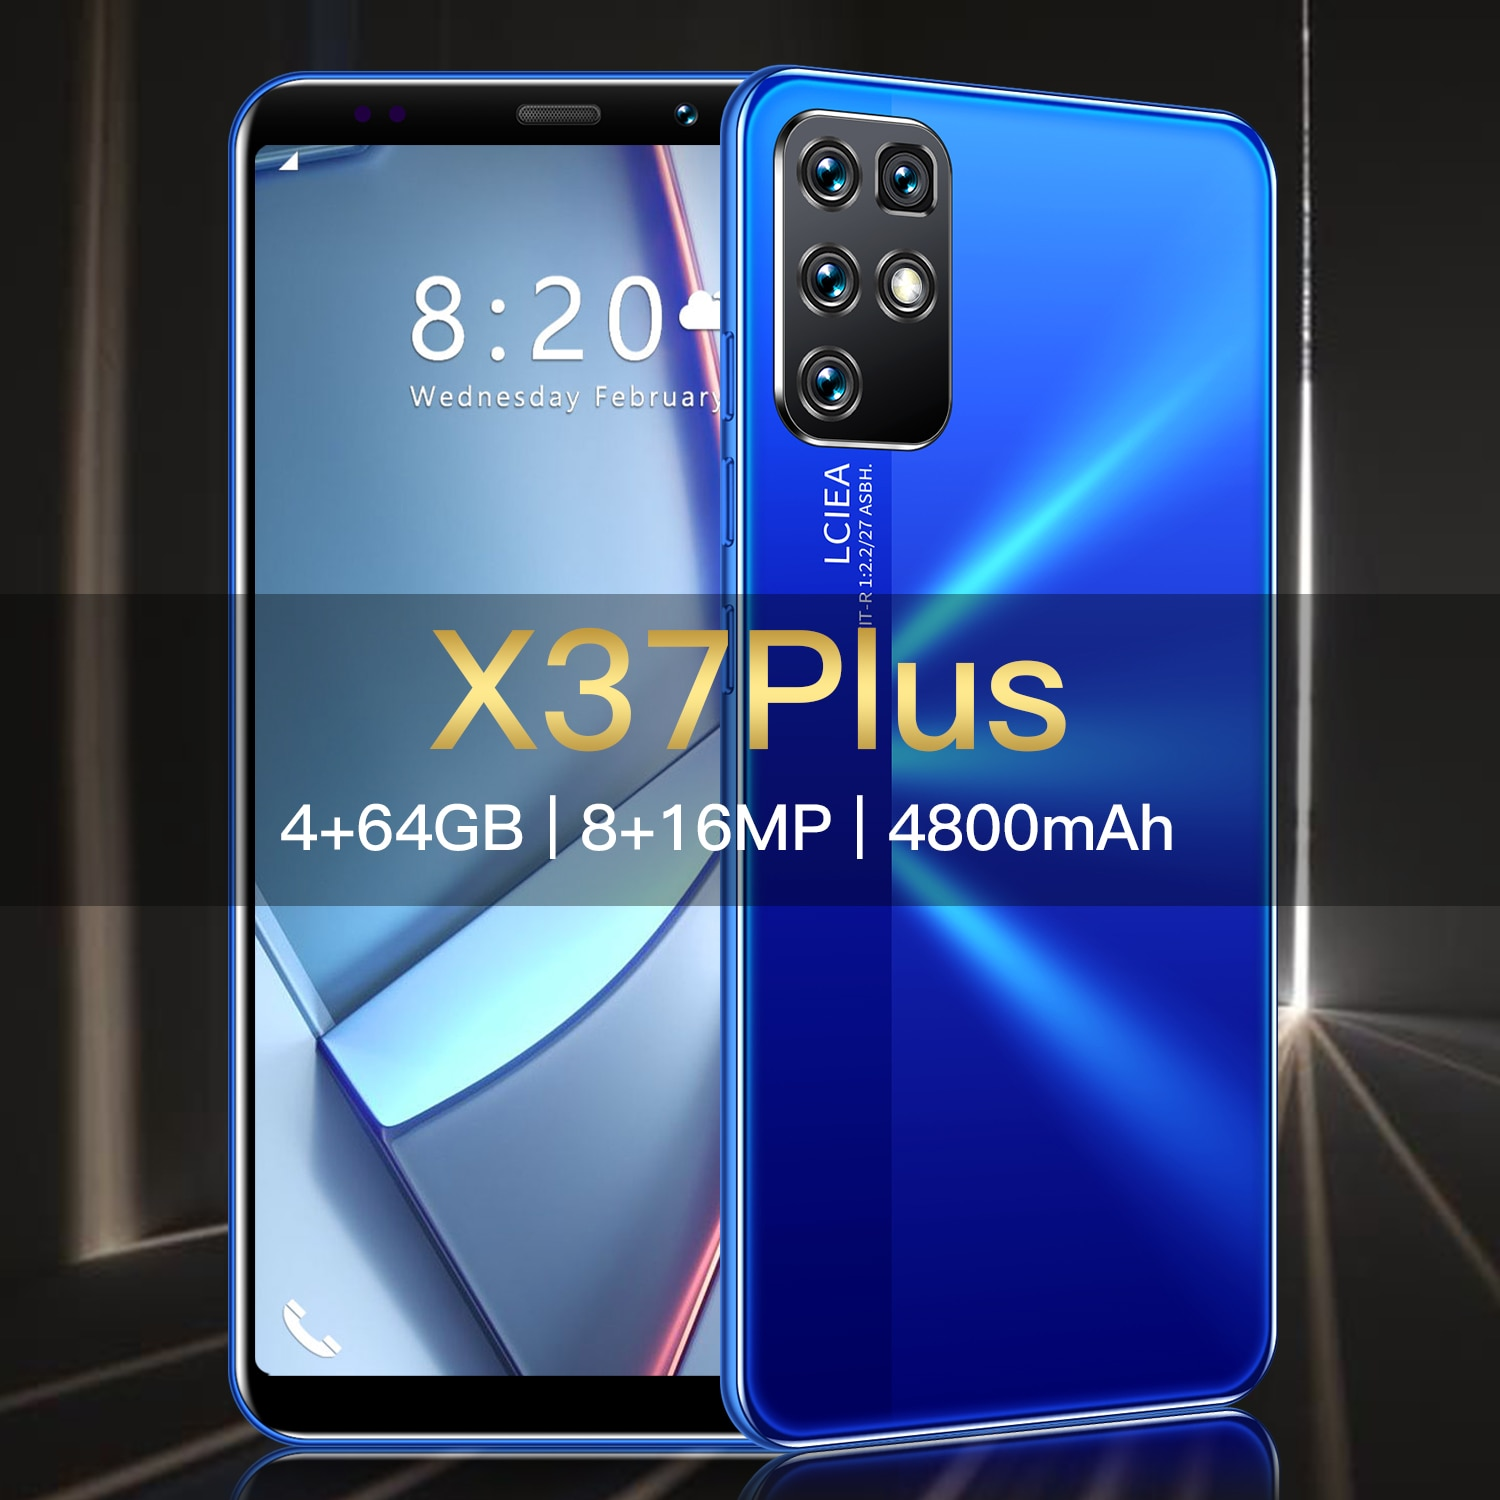 Global Version X37Plus 5.8Inch Full Screen Smartphone 4+64GB 8+16MP Face Unlock 4800mAh Long Standby 10core Android Mobile Phone enlarge